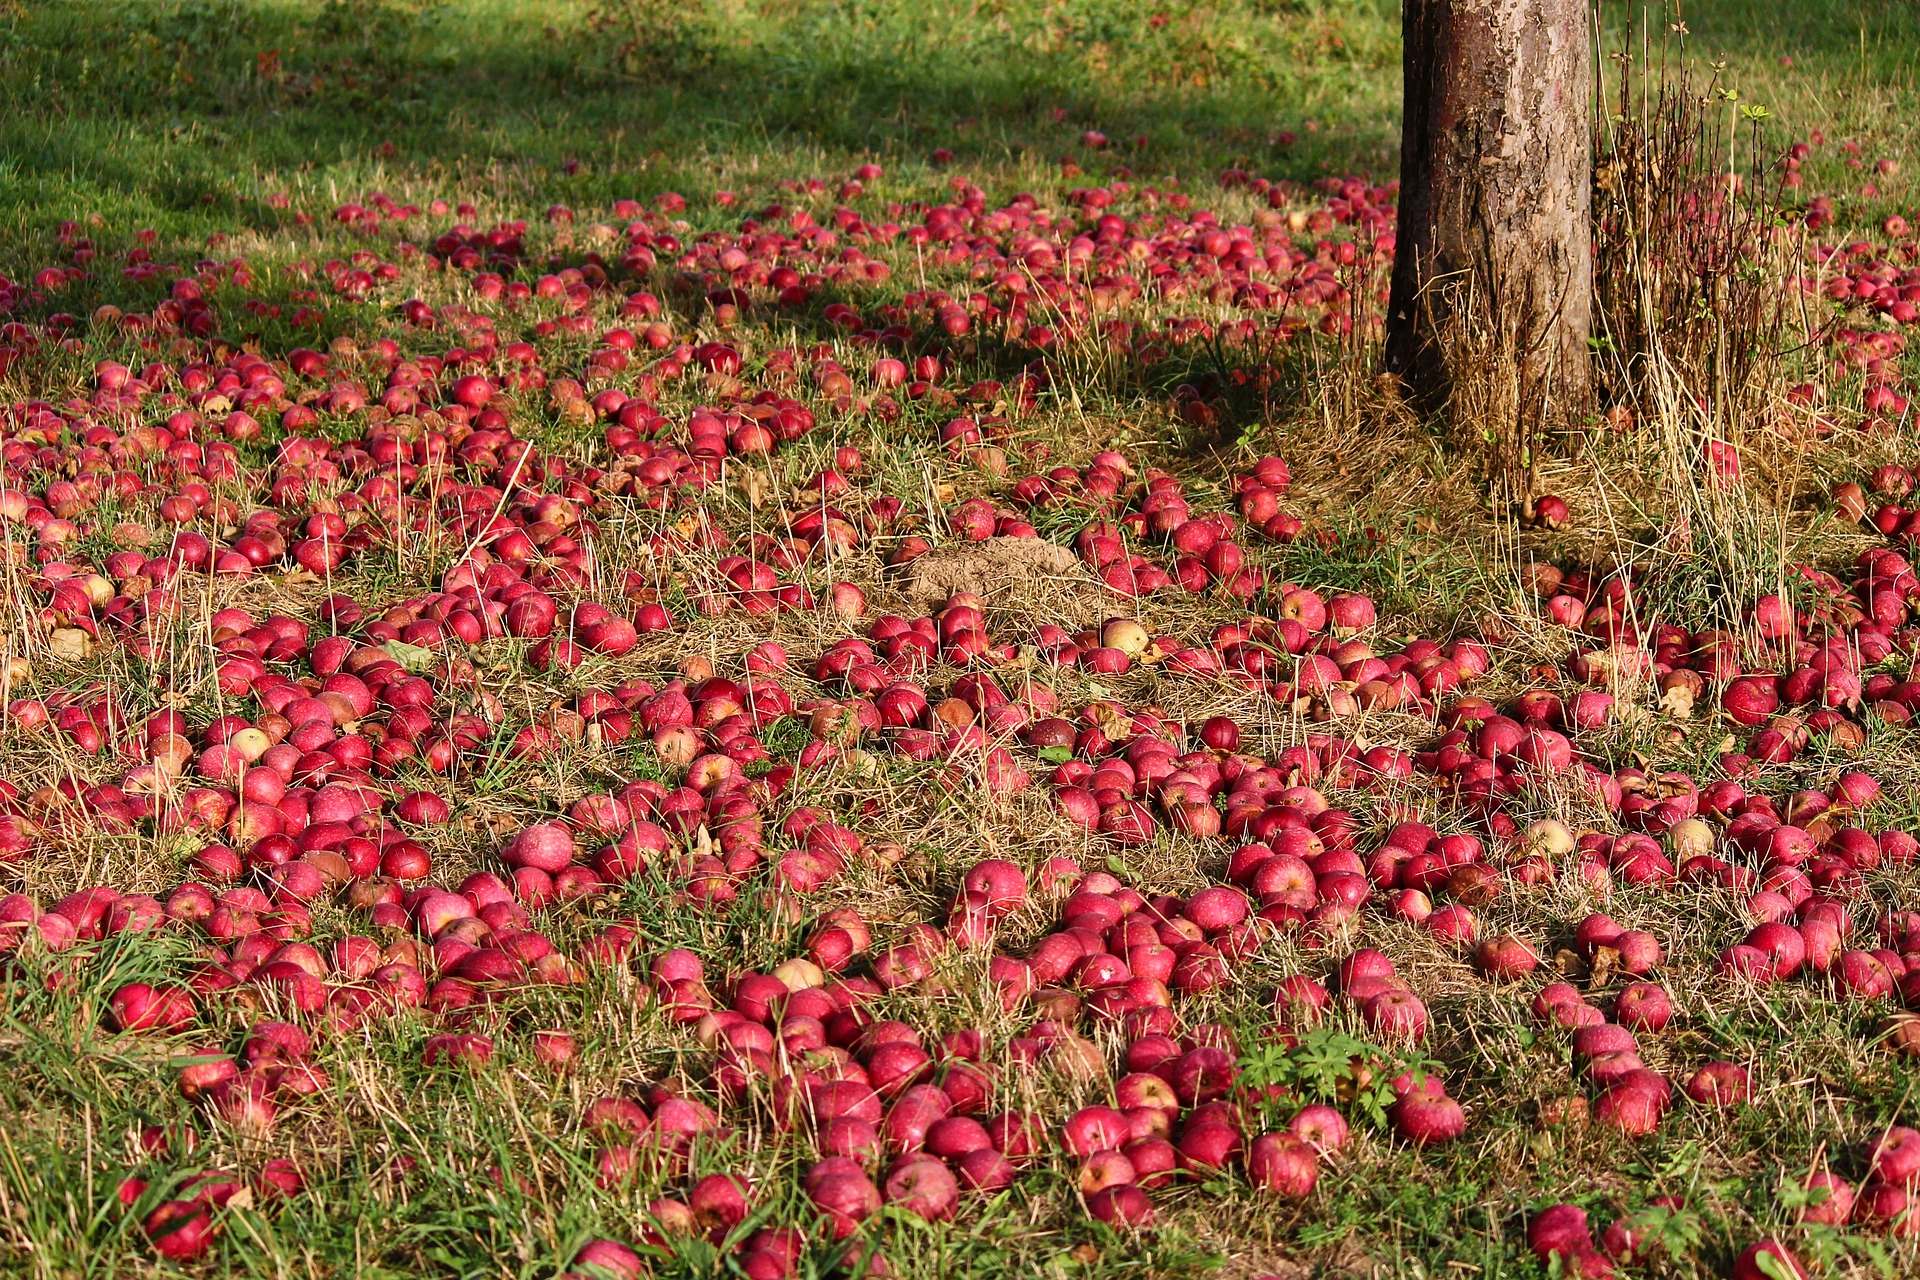 Fruit drops from the apple tree.